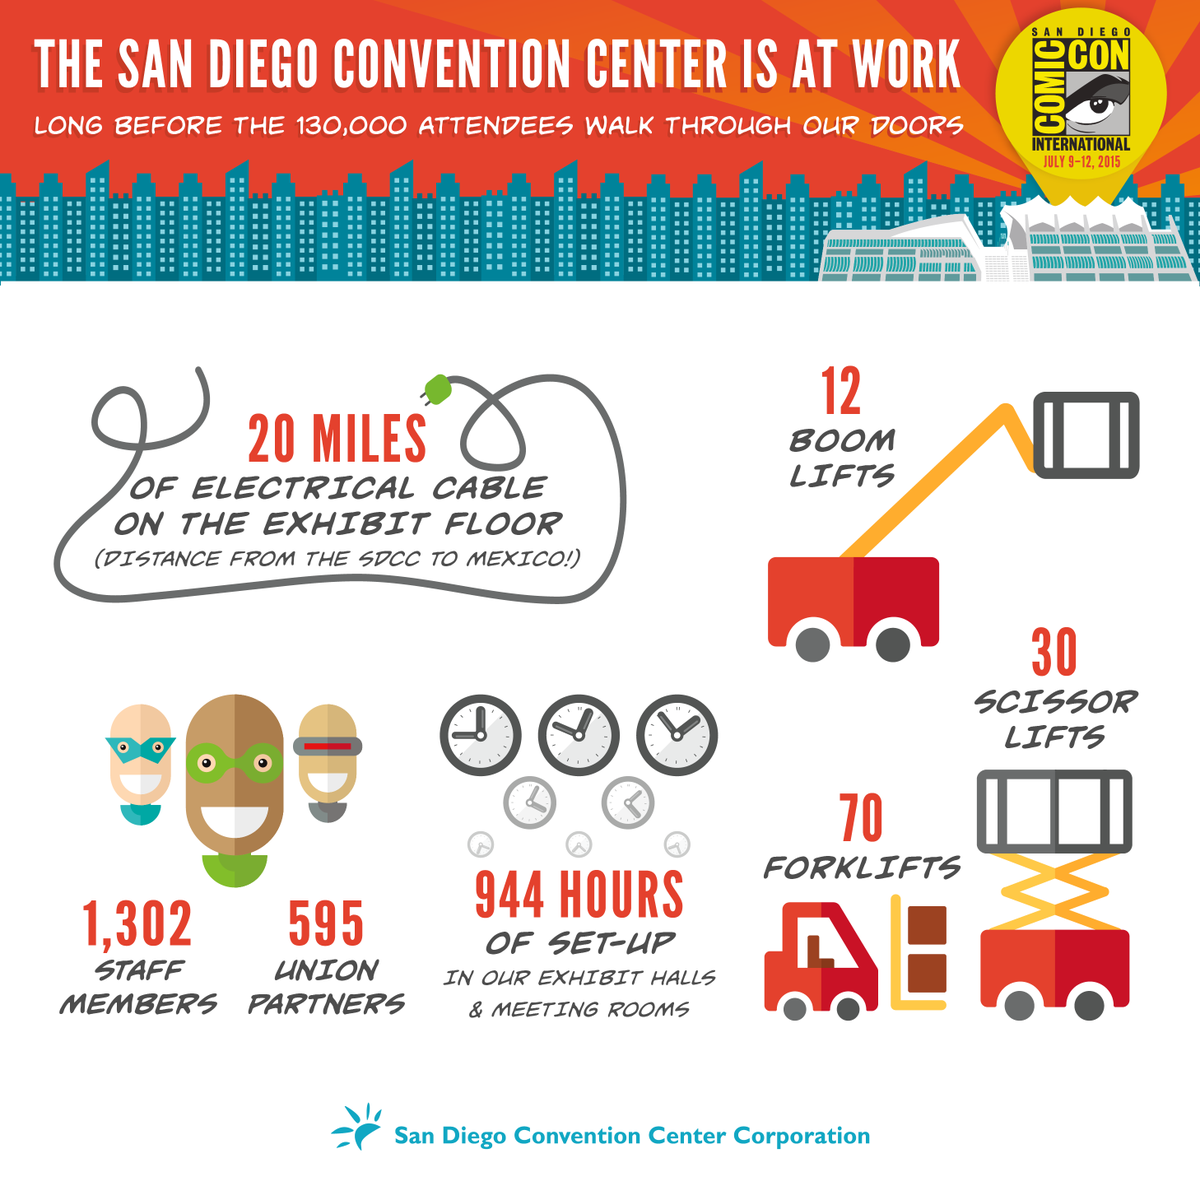 Looking for some fun facts about @Comic_Con? Here's a look at the event by the numbers: http://t.co/15bjnh7p89 #SDCC http://t.co/ZdLnFYFt7F